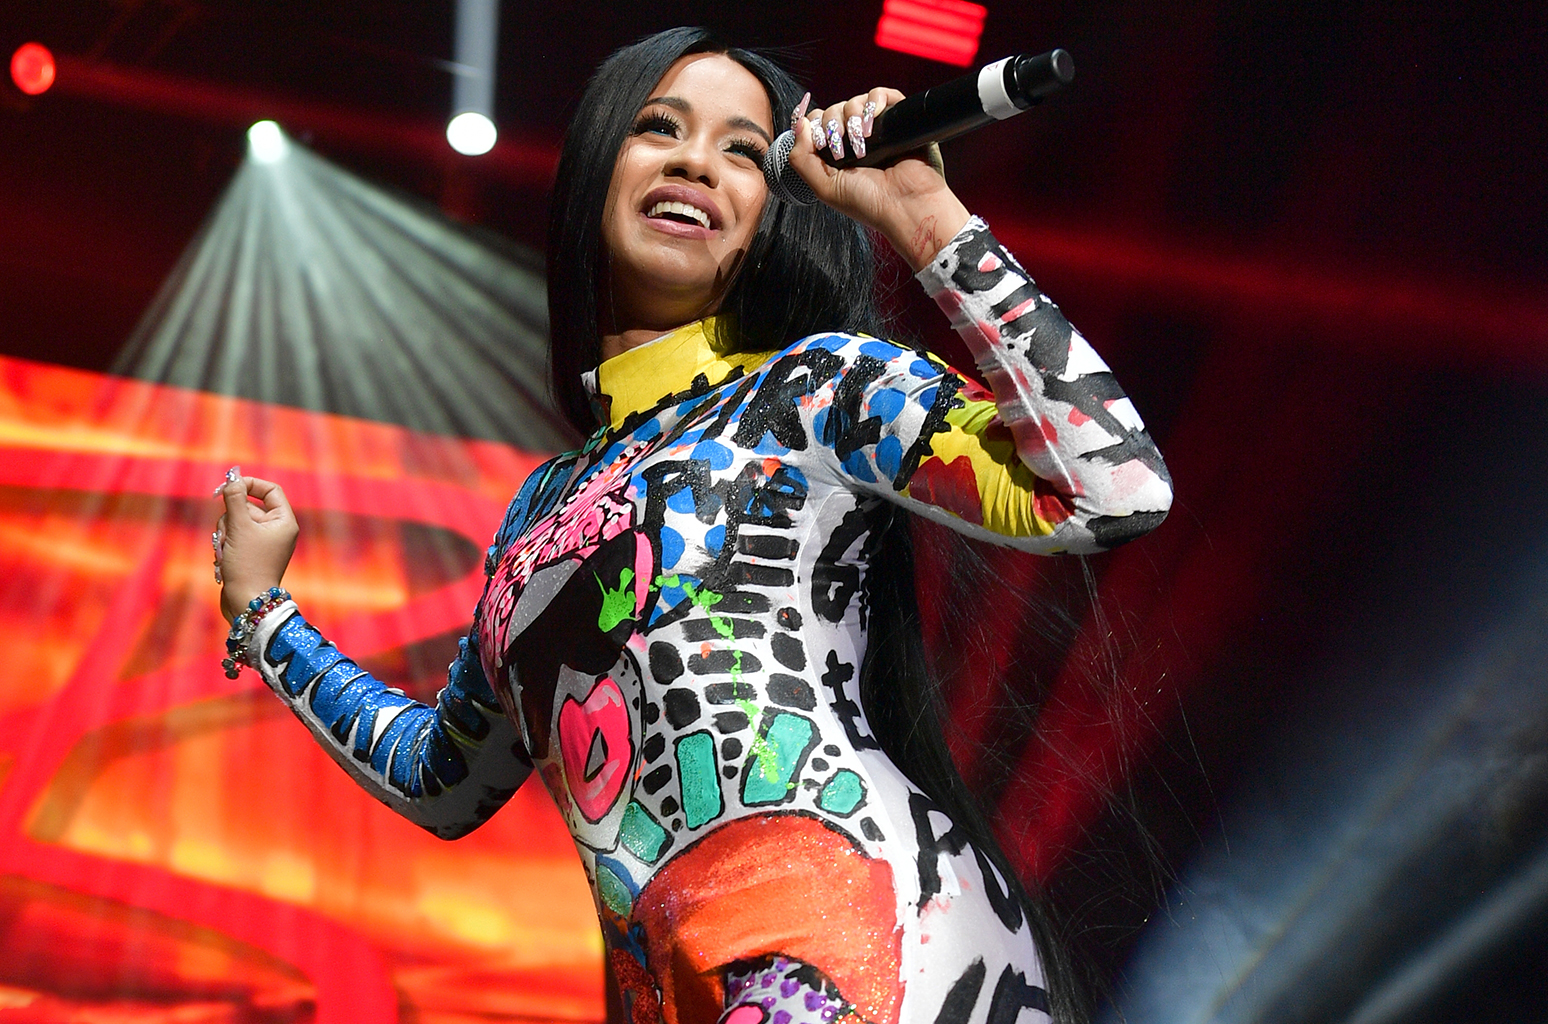 Fans Guess The Name Cardi B And Offset Will Give Their: Cardi B Makes Billboard Chart History...Again